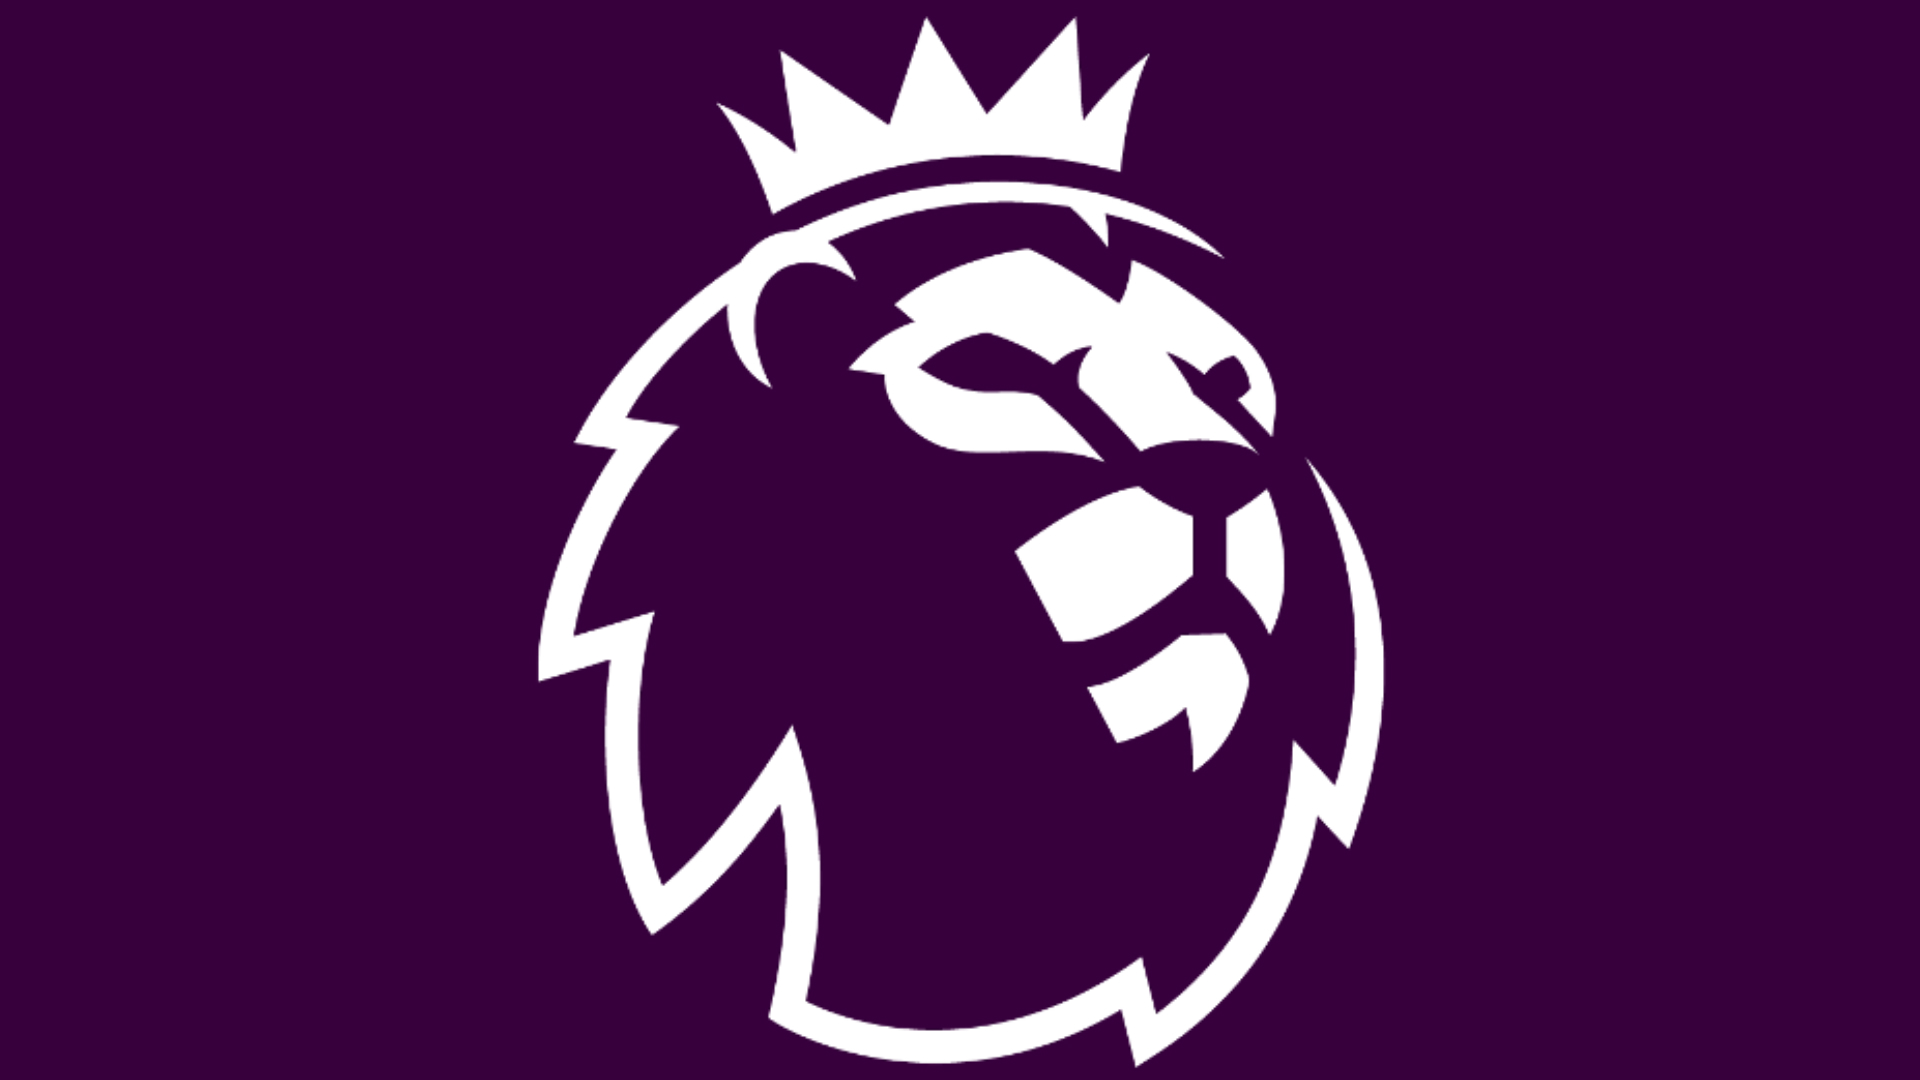 English Premier League to Launch Hall of Fame, First Two Inductees to Be Revealed on March 19